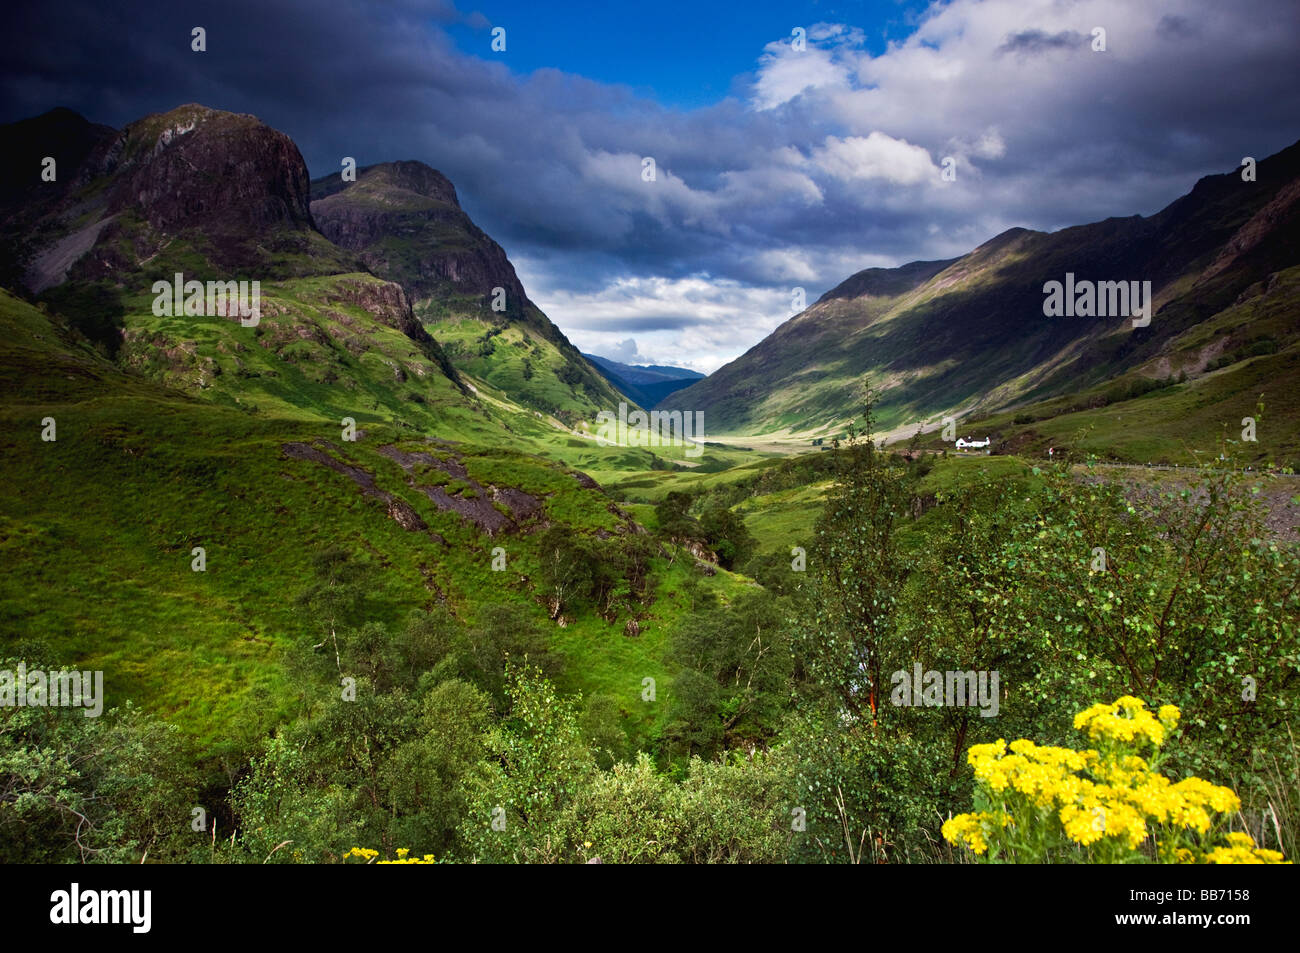 Looking towards the Three Sisters peaks in Glencoe in the Scottish Highlands - Stock Image